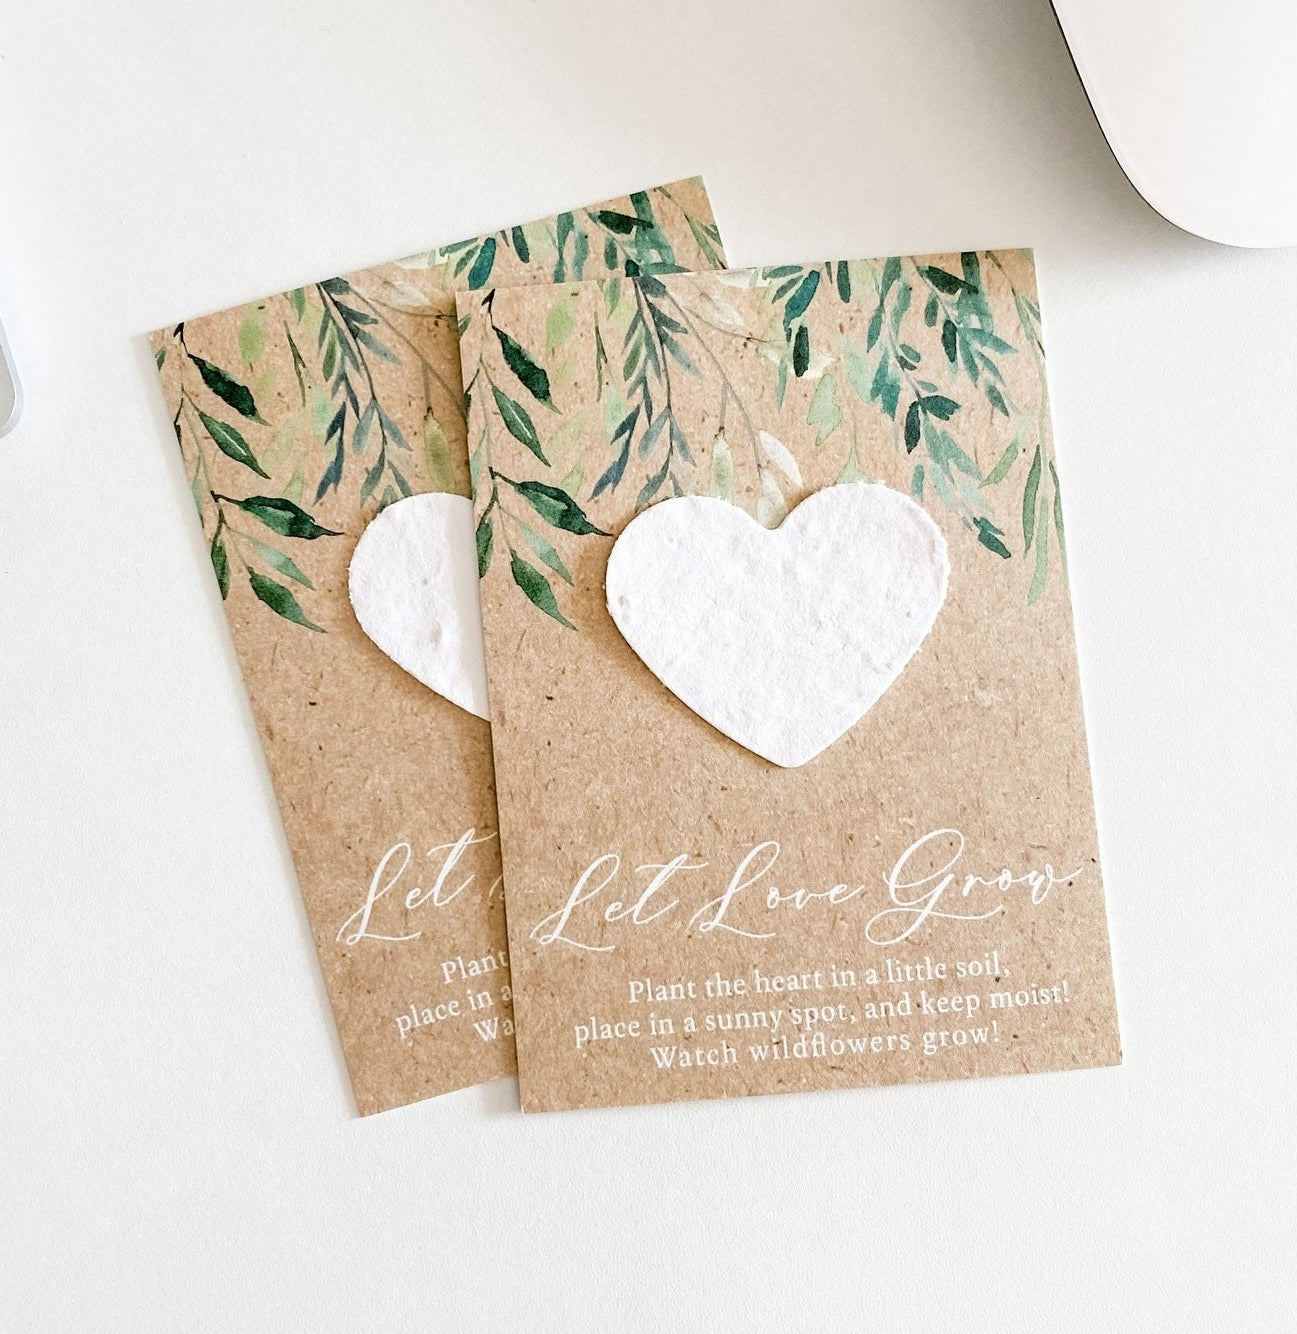 """Two natural cards with a heart shaped seed paper and says """"Let love grow, plant the heart in a little soil, place in a sunny spot, and keep moist, watch wildflowers grow"""""""